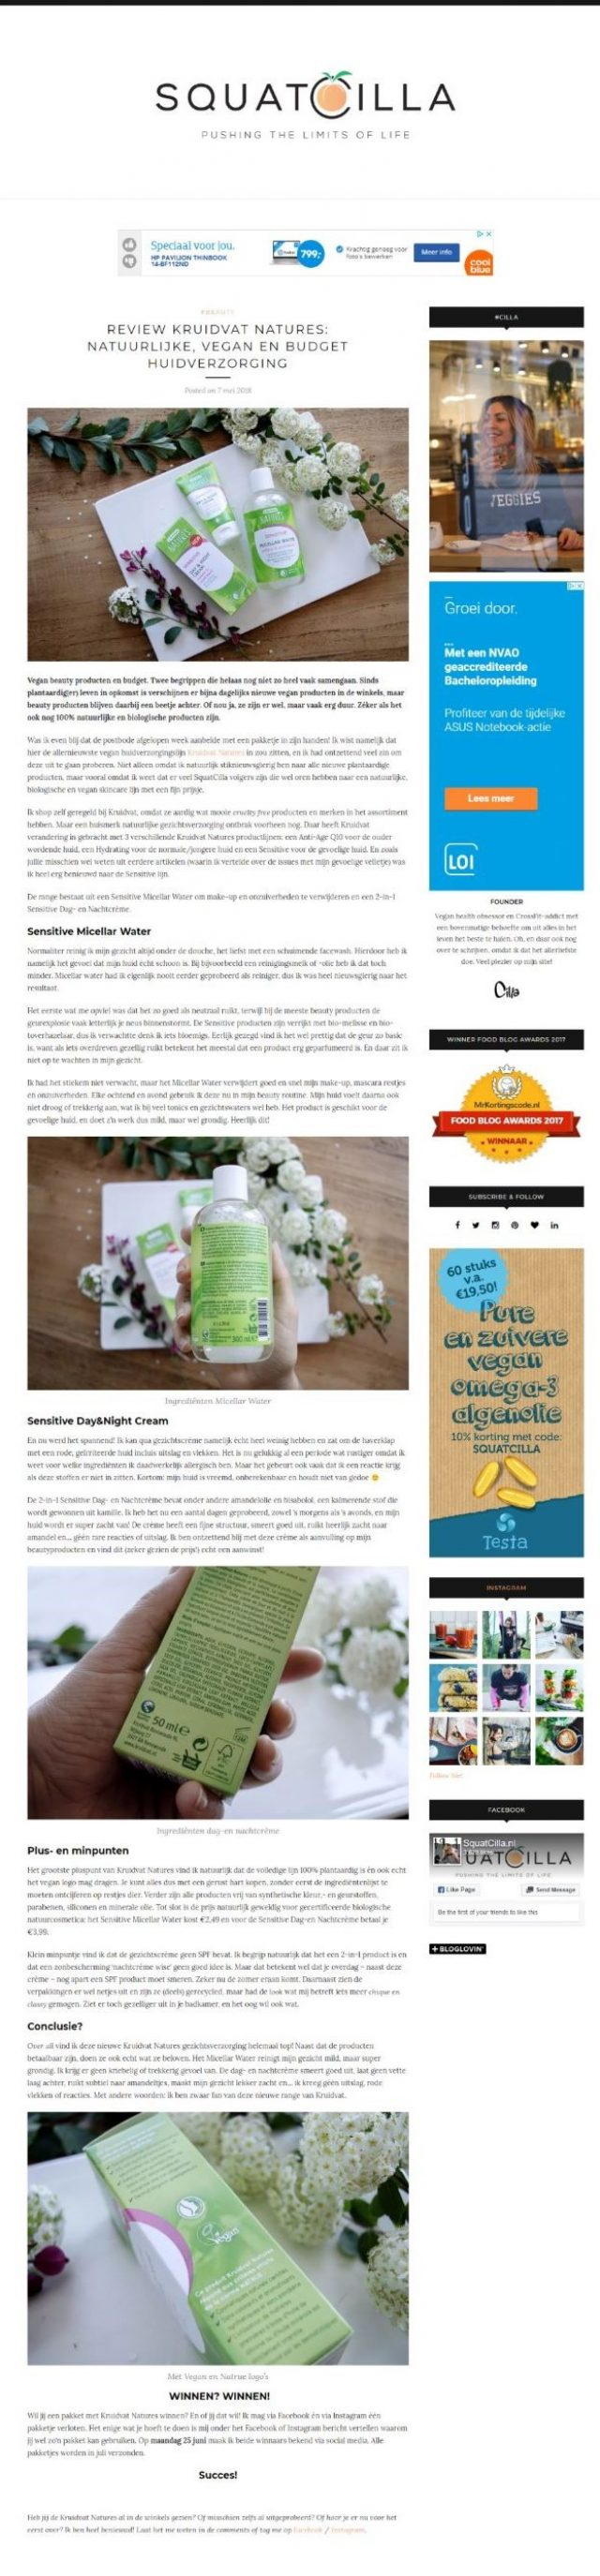 Squatcilla - review Kruidvat Natures - vegan influencer